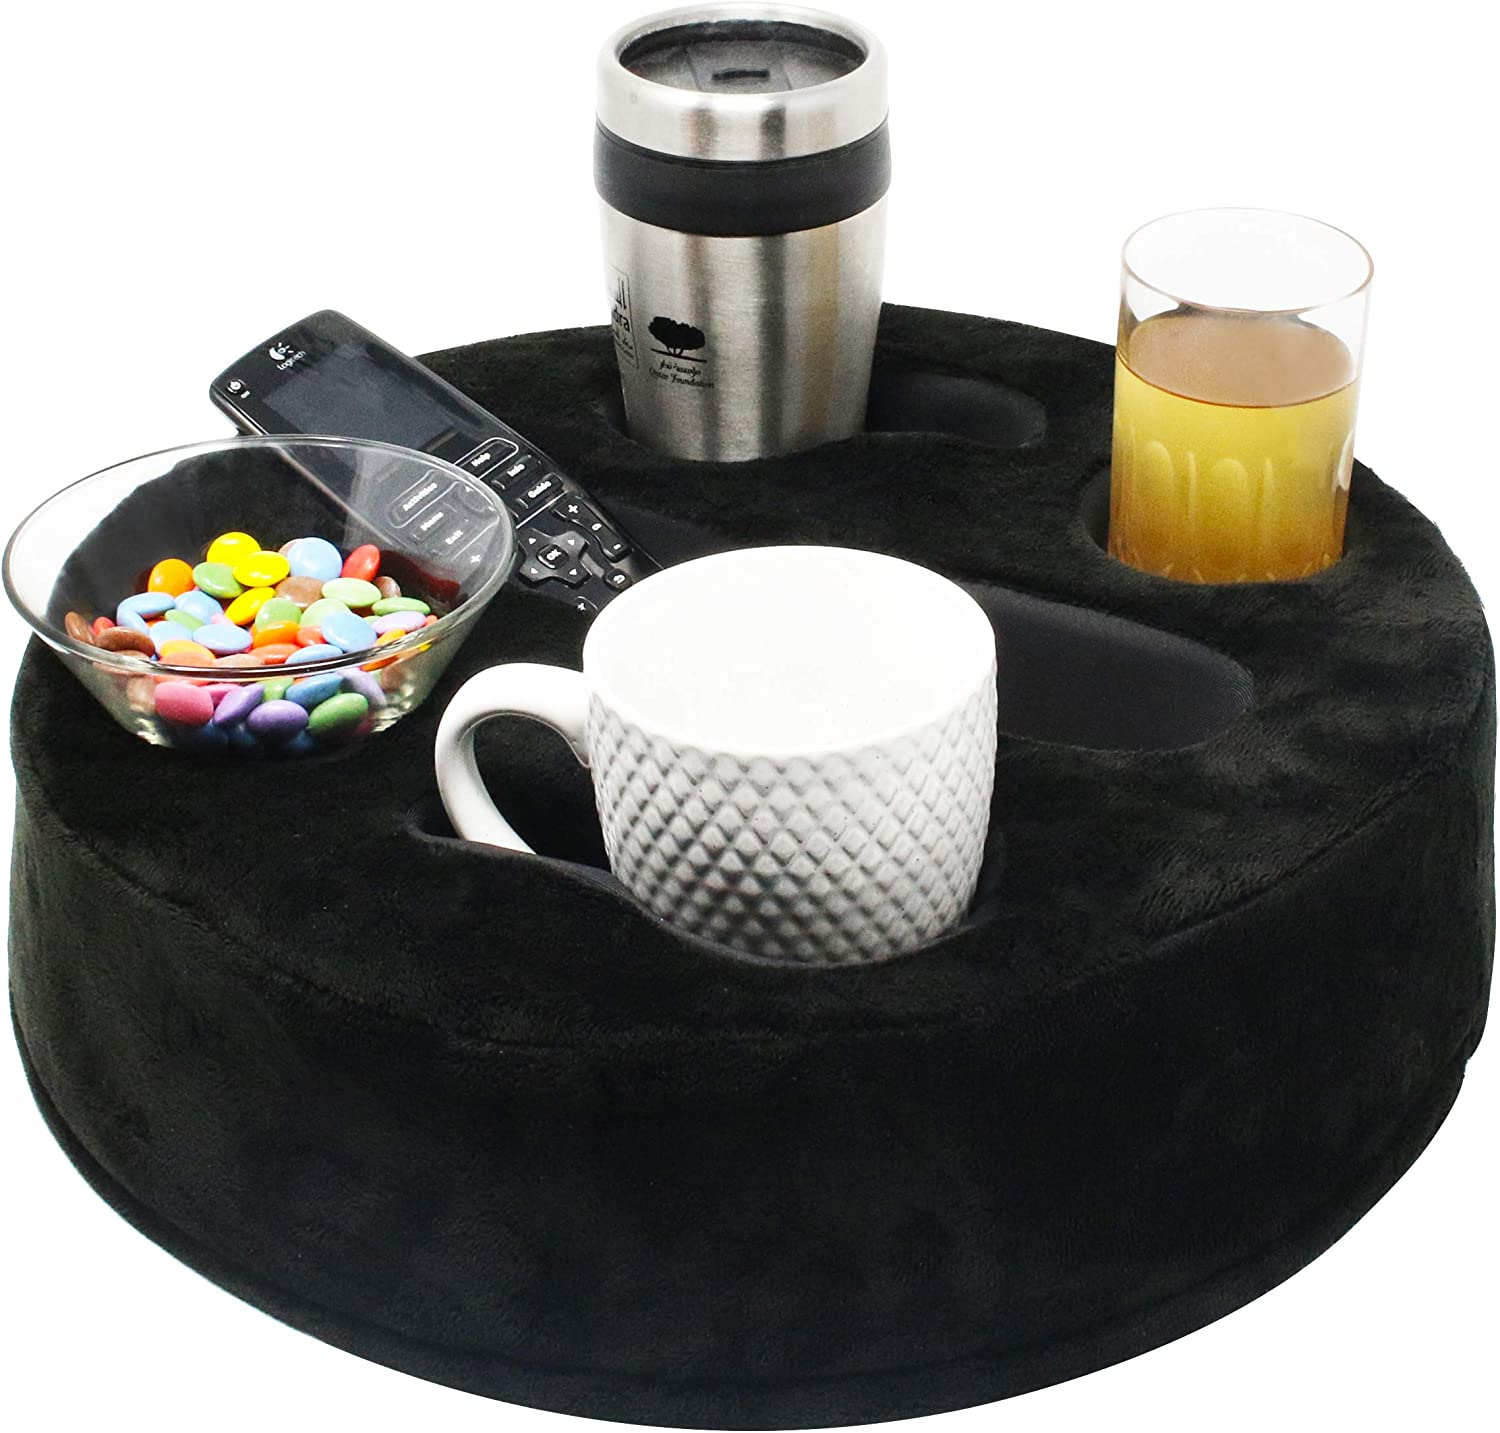 MOOKUNDY - Introducing Sofa Buddy - Convenient Couch cup holder, couch caddy, couch coaster, sofa cup holder. The perfect couch accessory